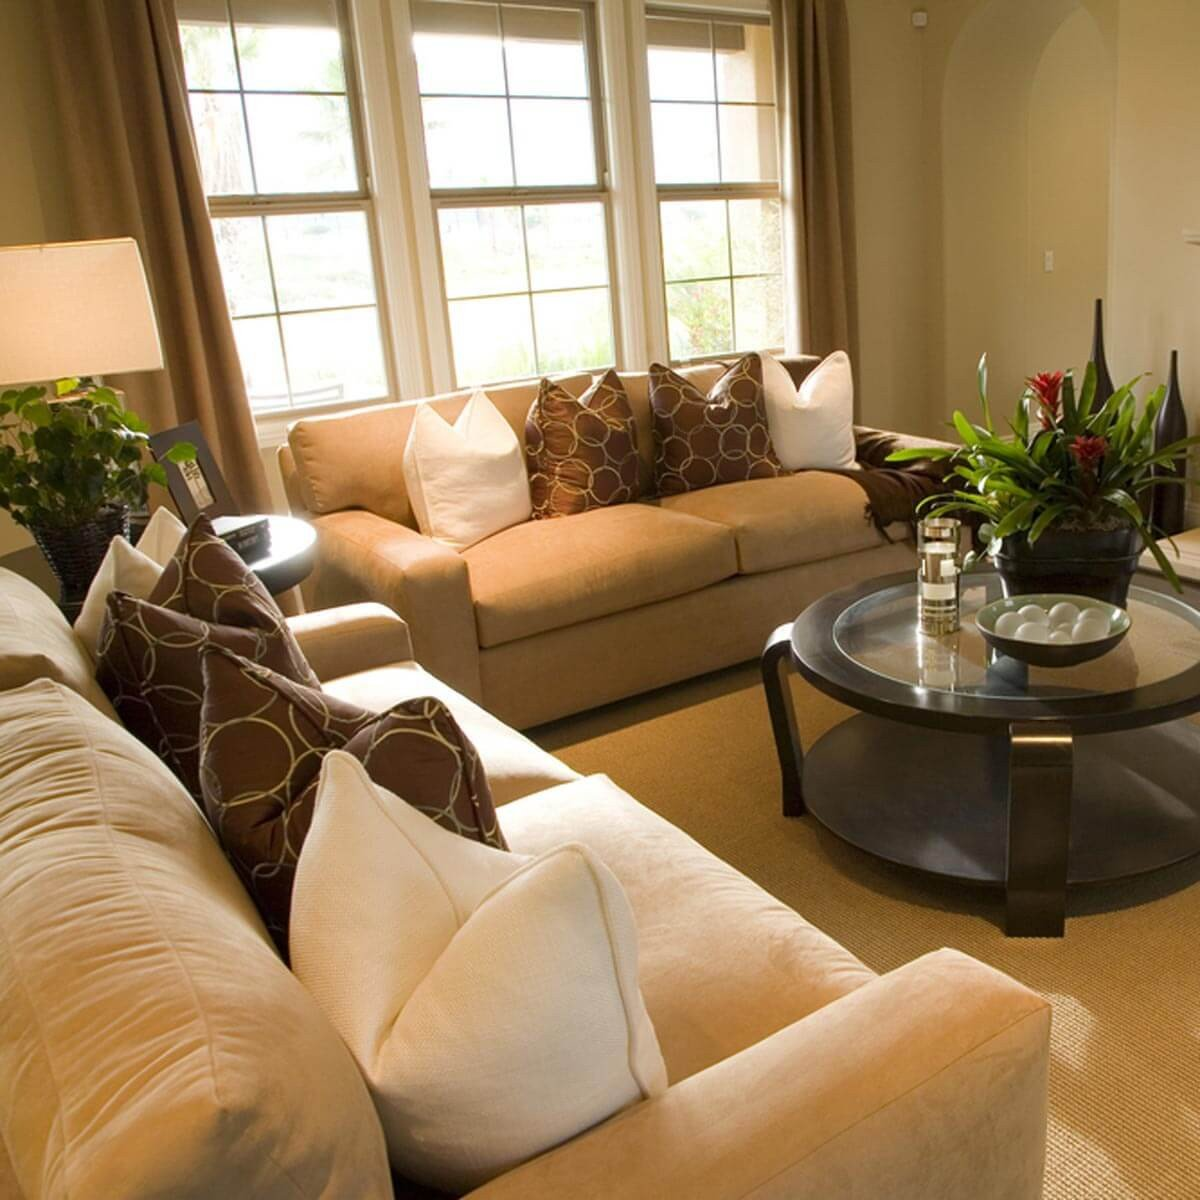 Traditional Style Living Room Fresh 14 Traditional Style Home Decor Ideas that are Still Cool